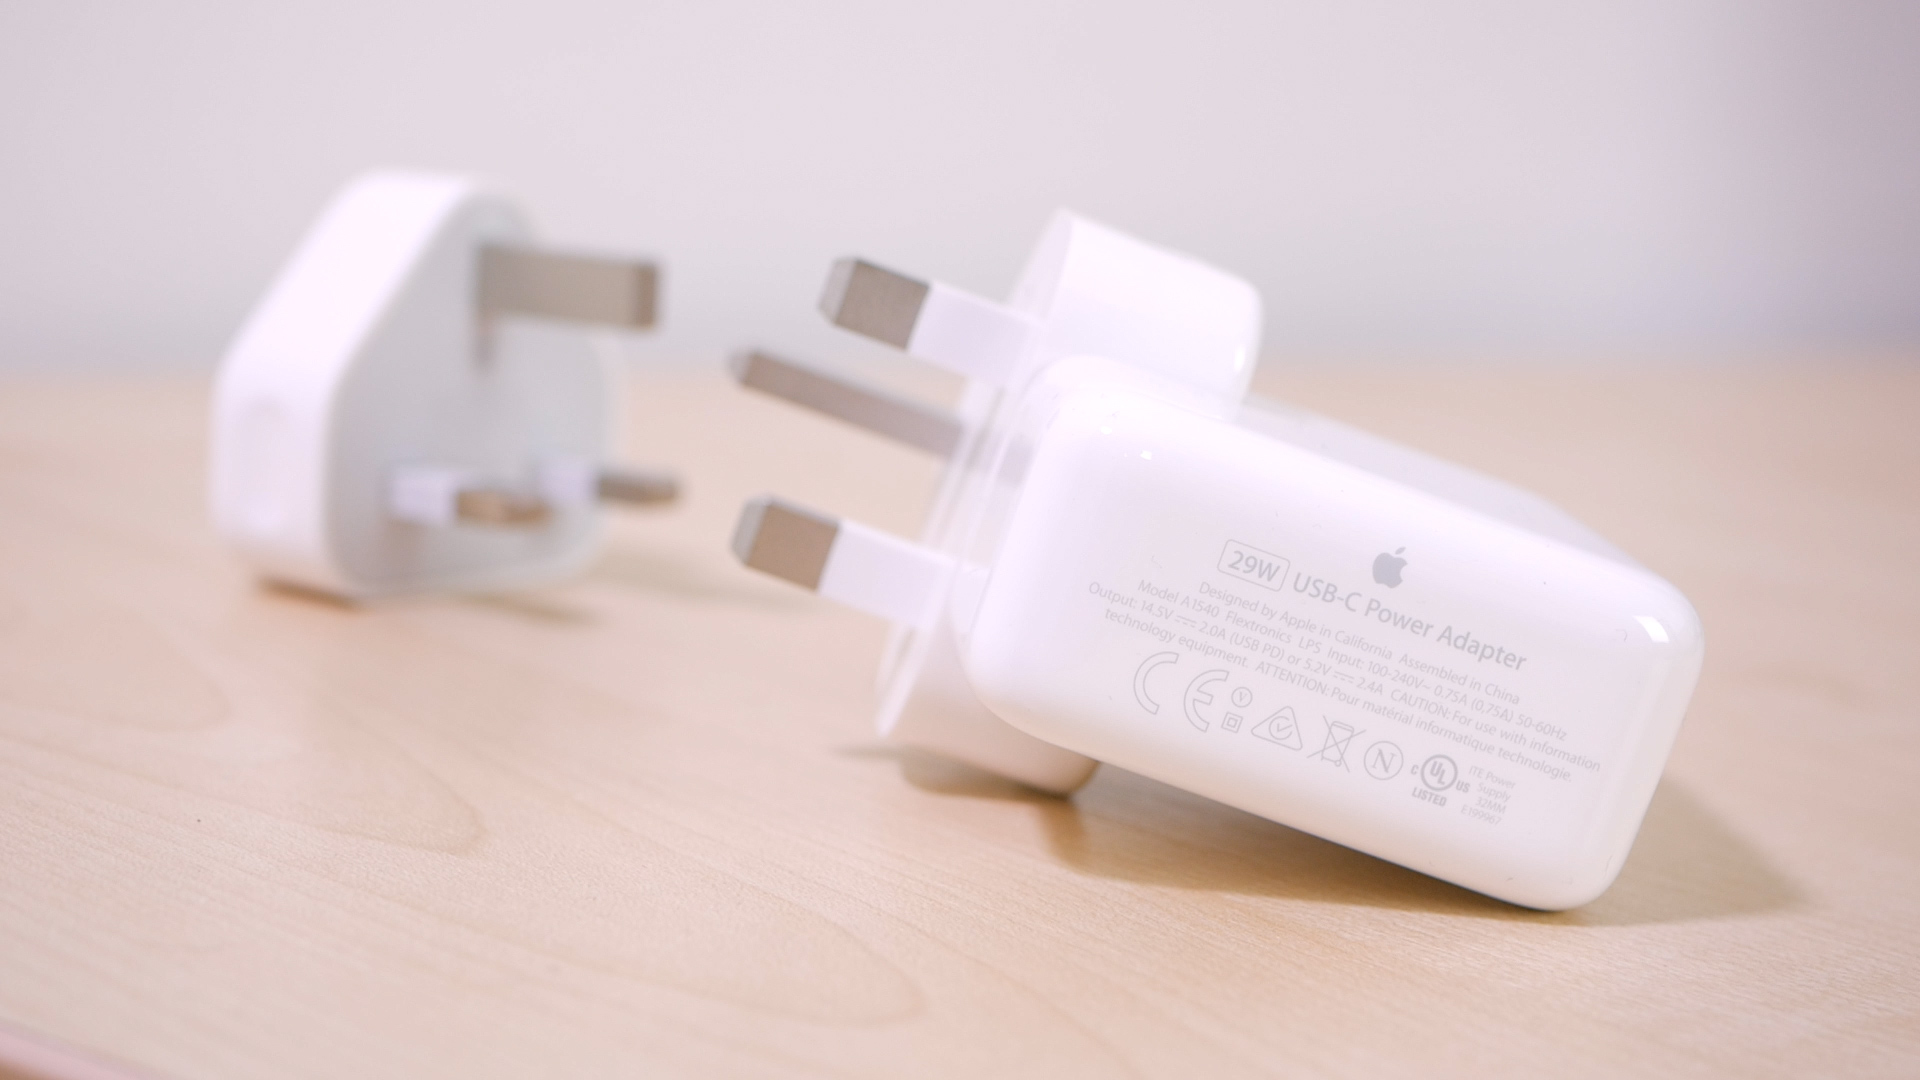 How to fast charge your new iPhone wirelessly or with a cable